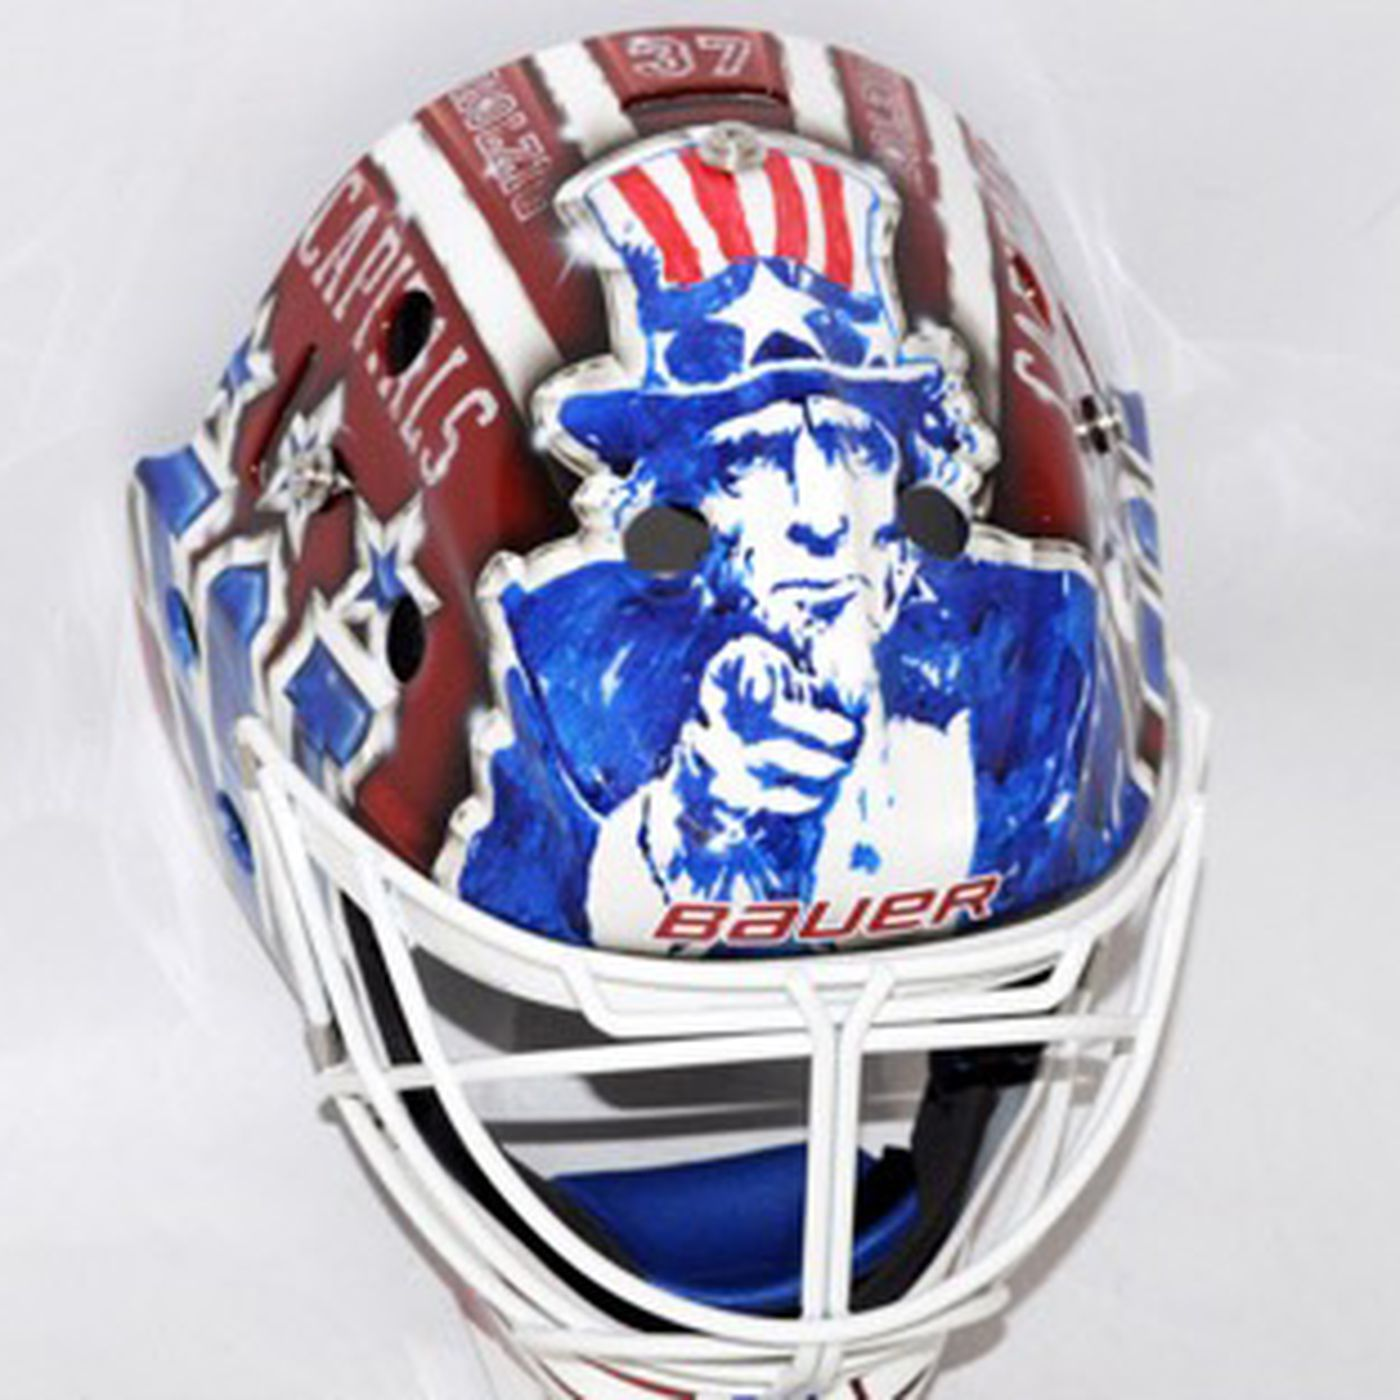 Braden Holtby S Winter Classic Throwback Mask Revealed Japers Rink